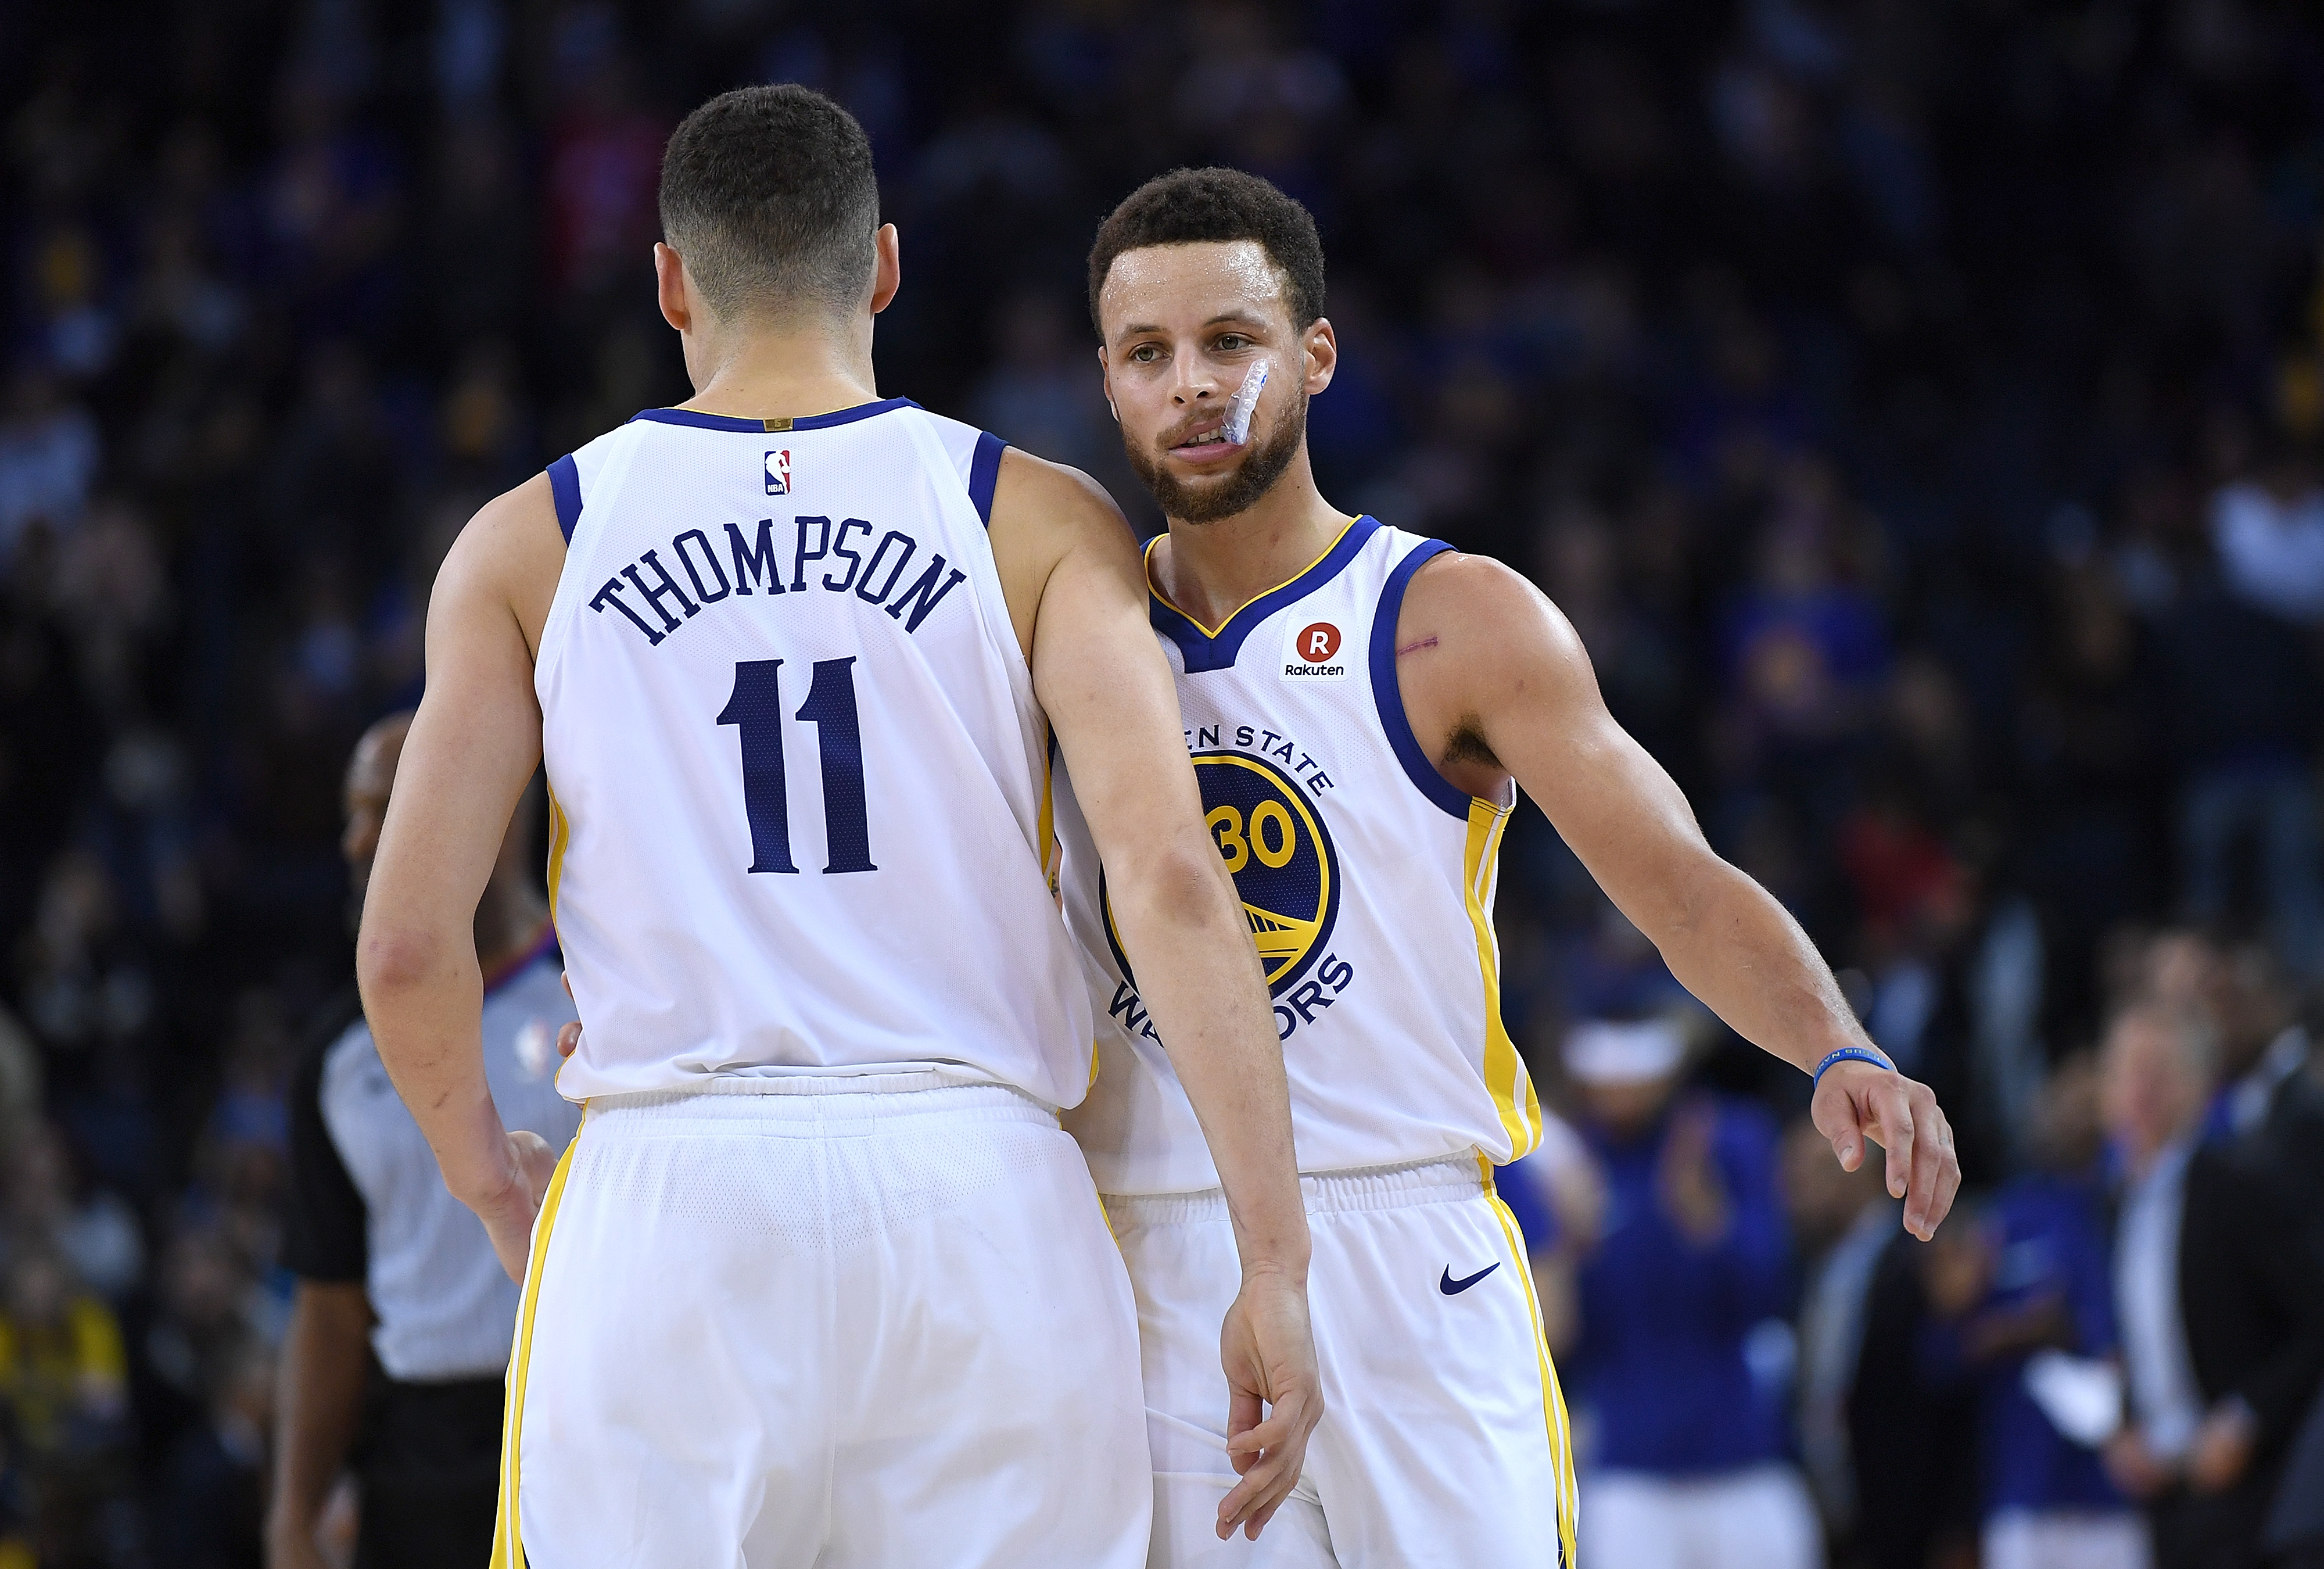 The 'Splash Brothers' reunion between Klay Thompson and Stephen Curry will have to wait until 2021. Curry just sent the injured Thompson a dire message.